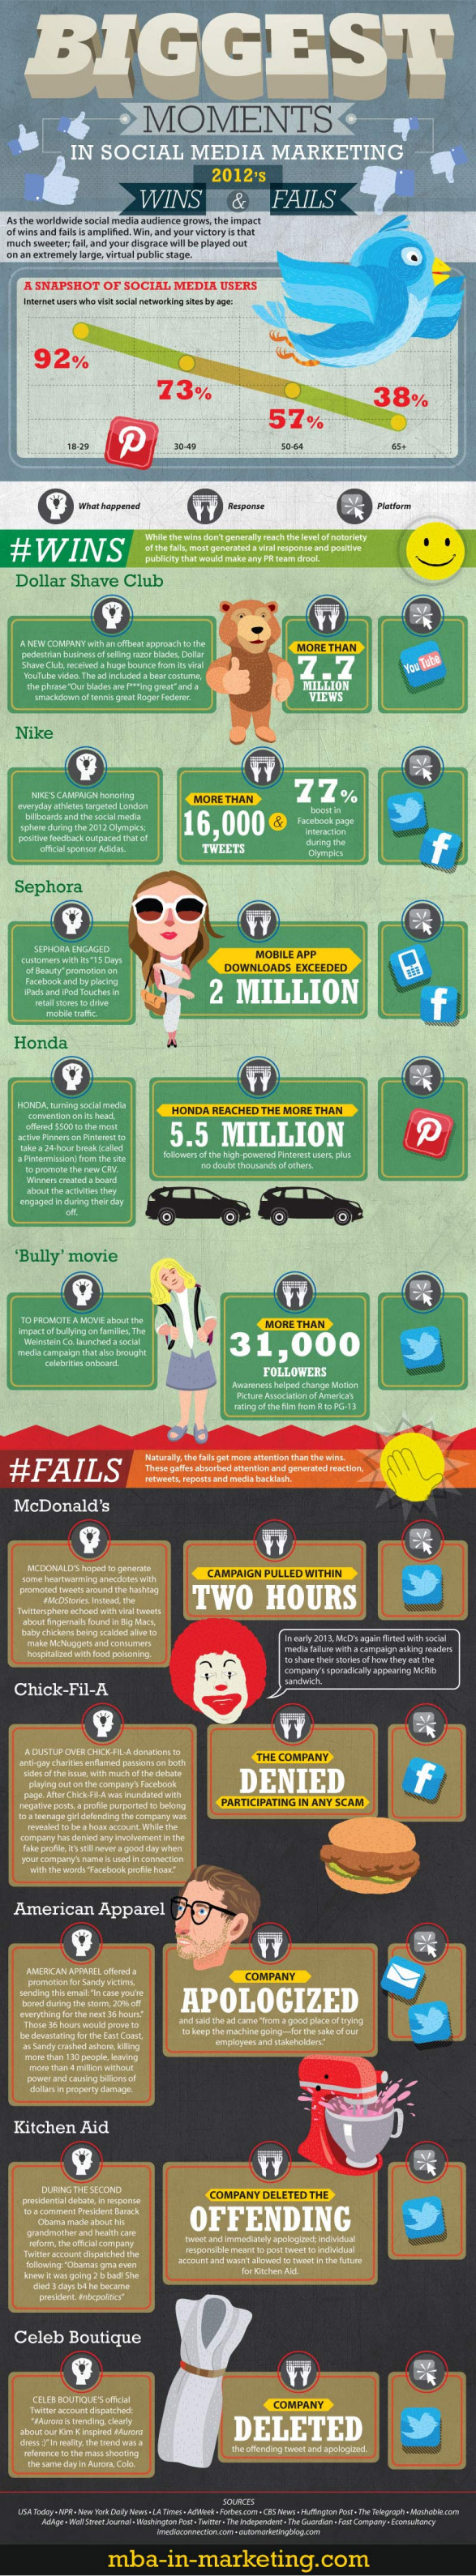 Brand wins and fails in social media